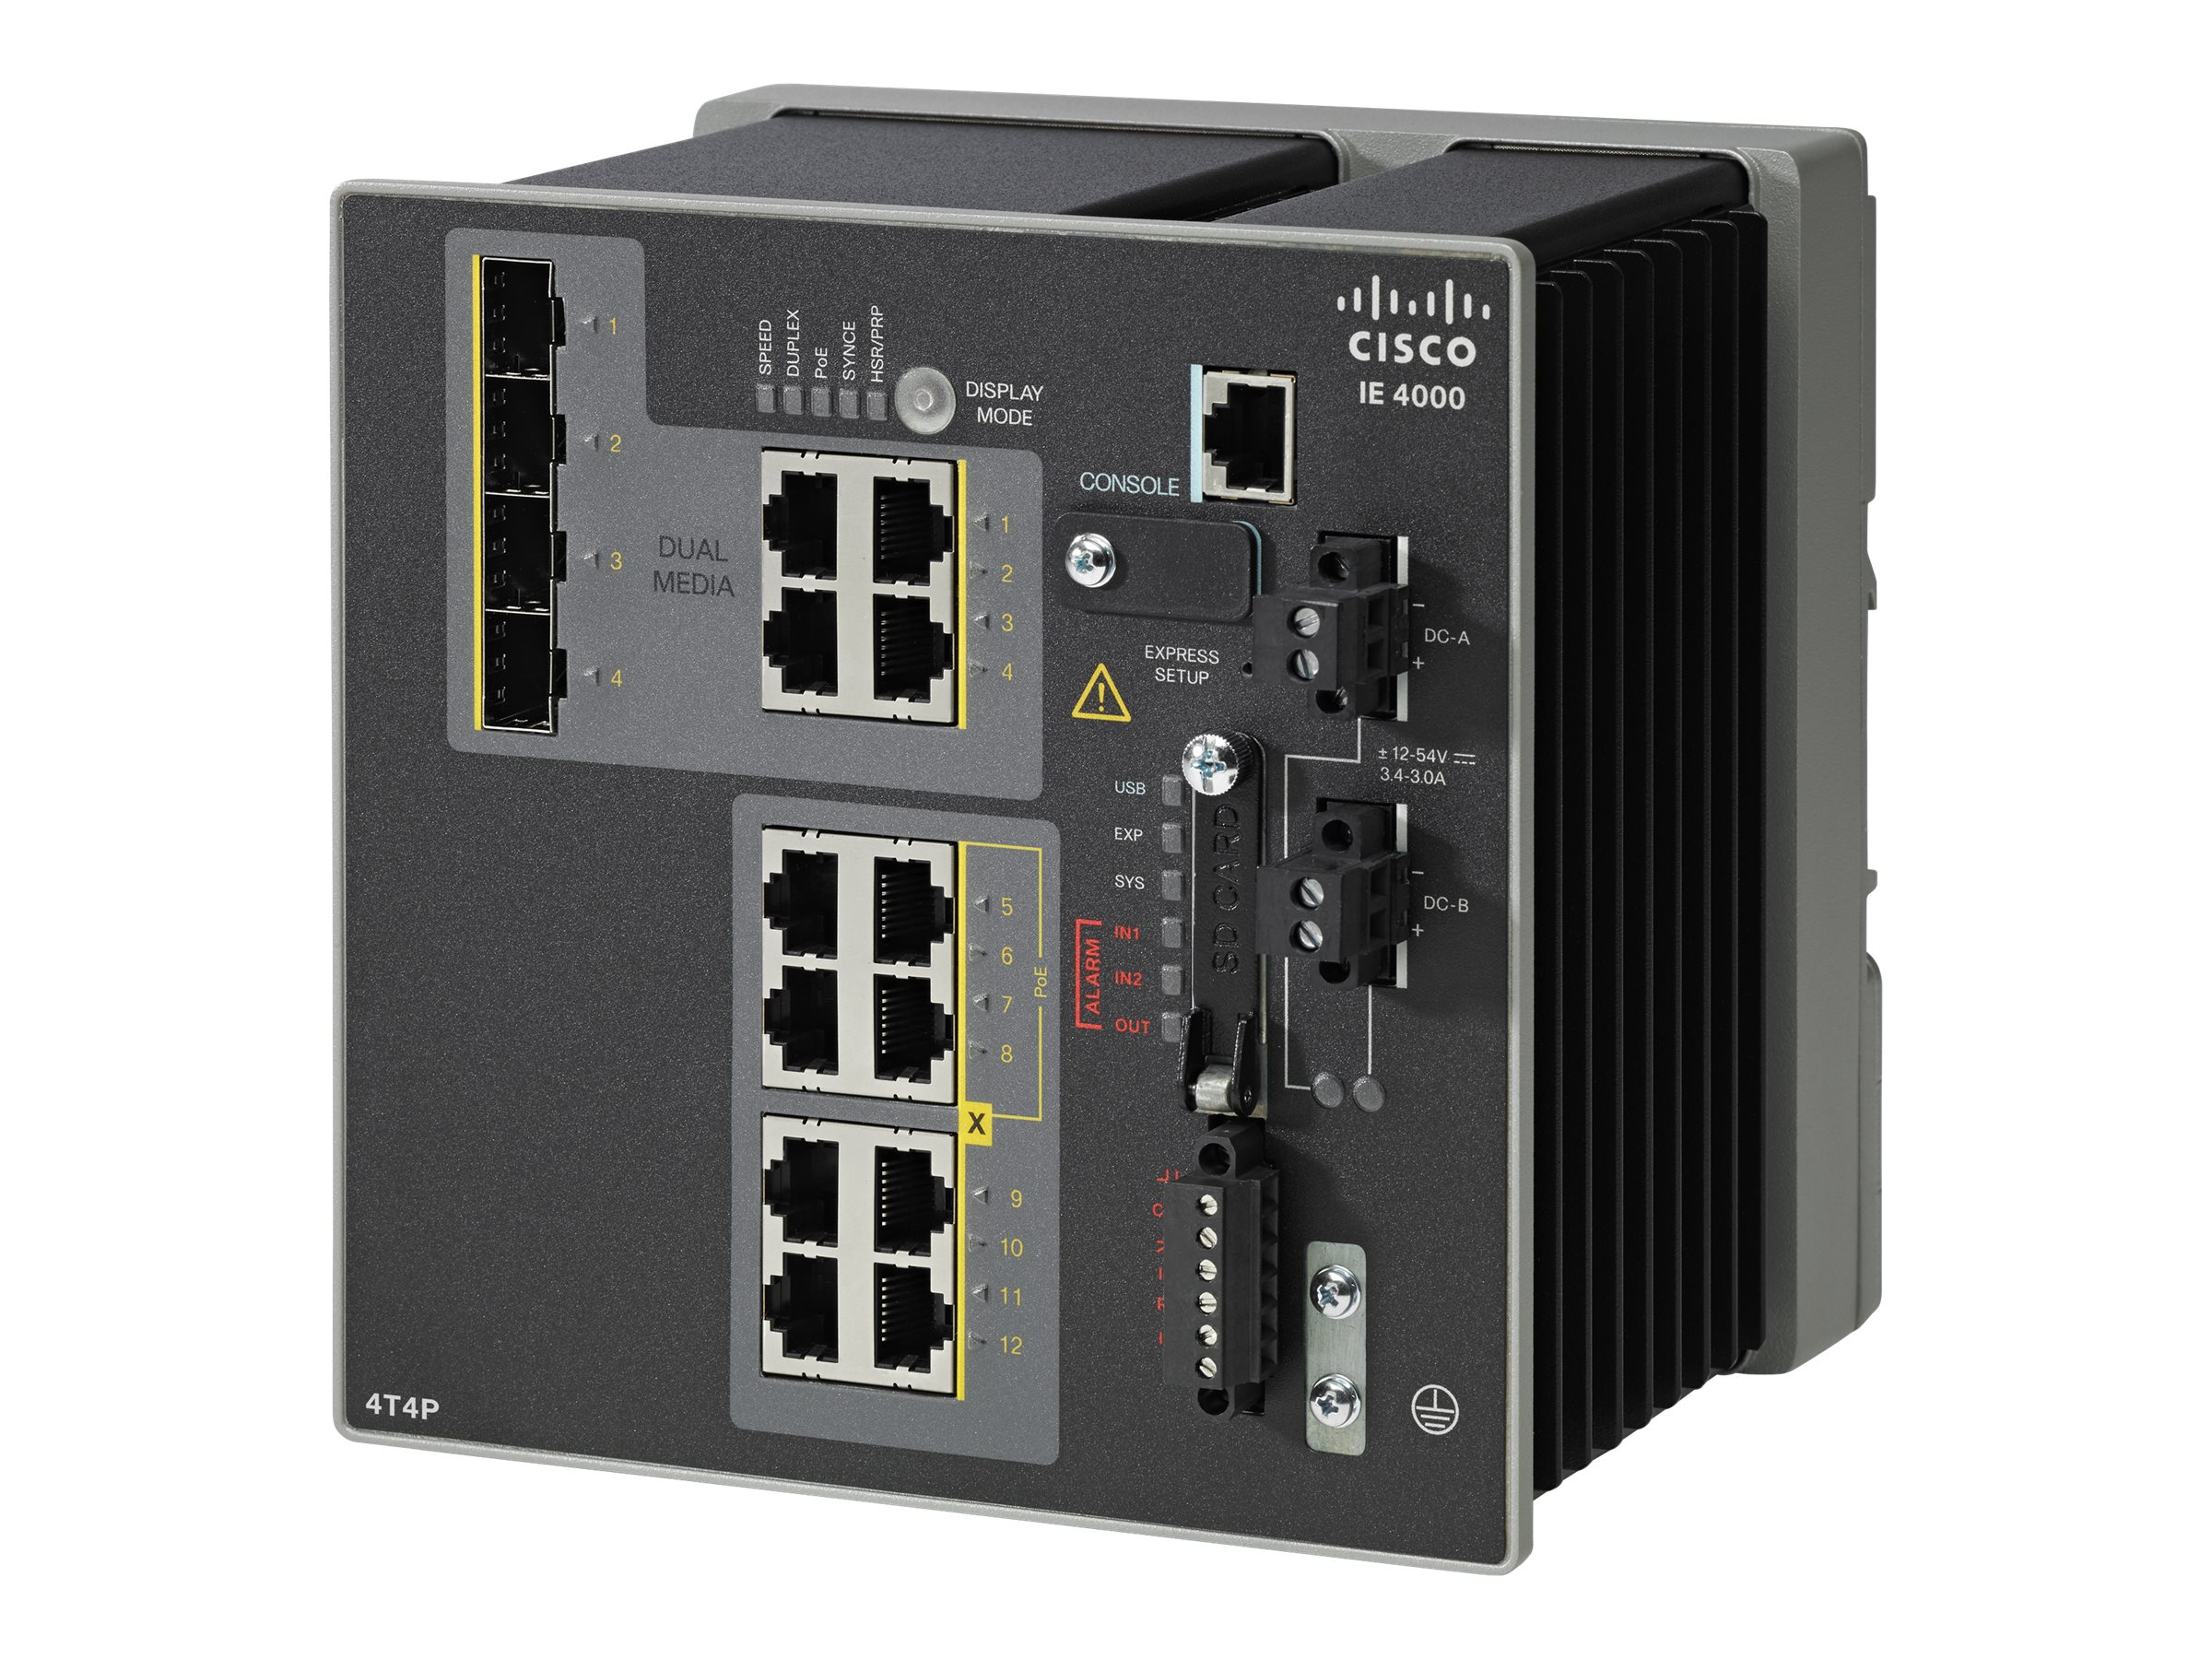 Cisco IE-4000-4T4P4G-E Image 1